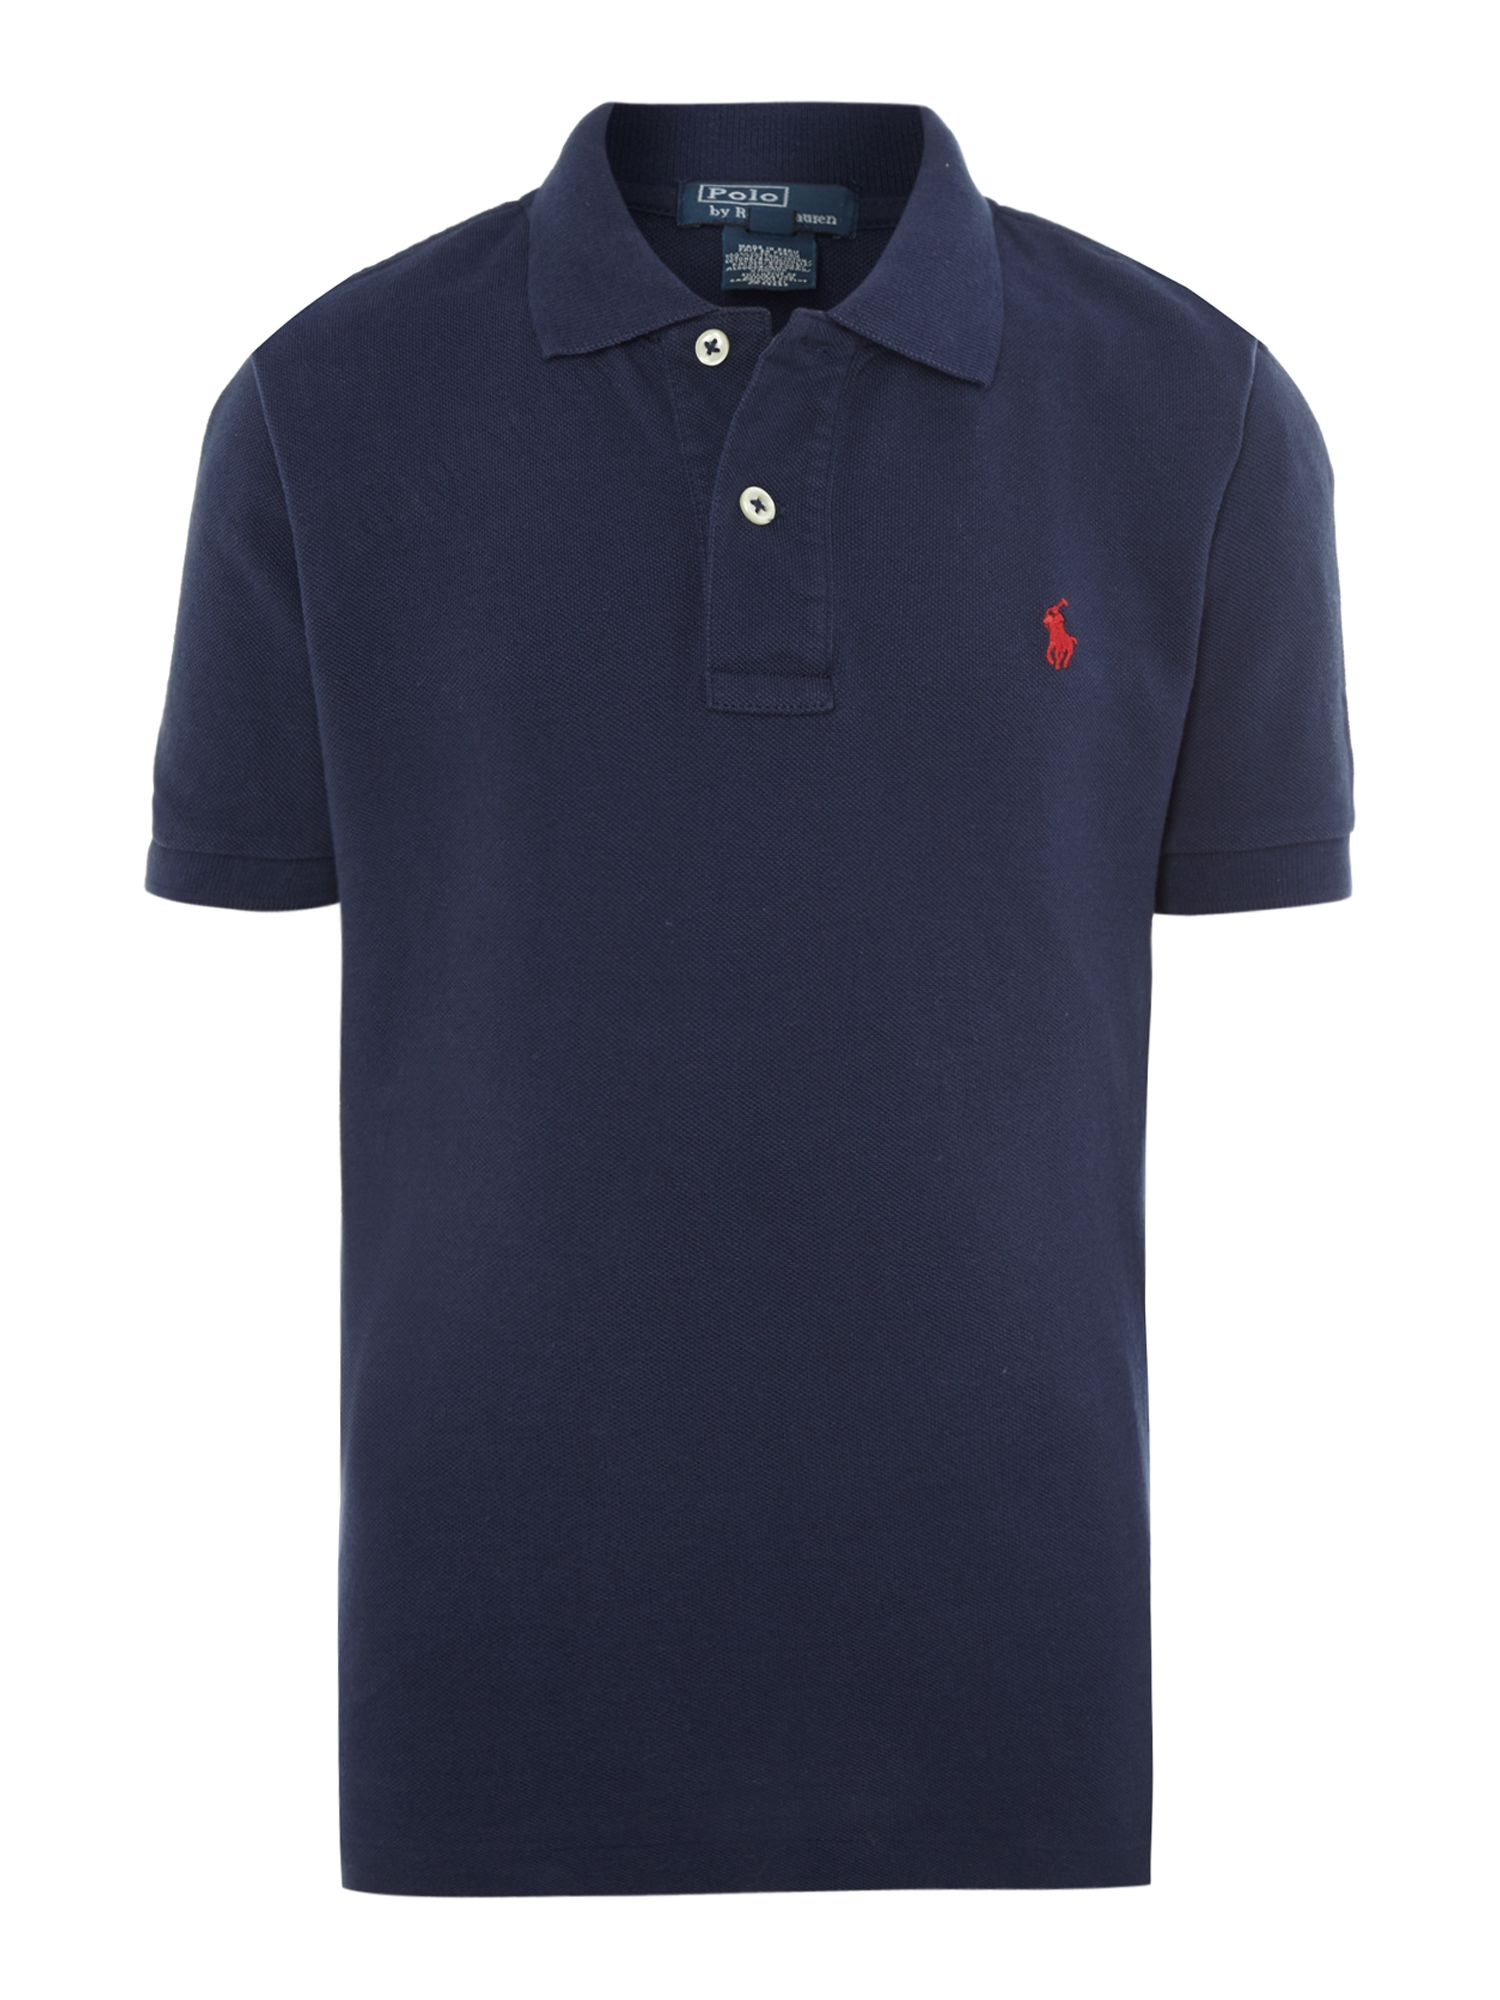 Boy`s small pony logo classic polo shirt